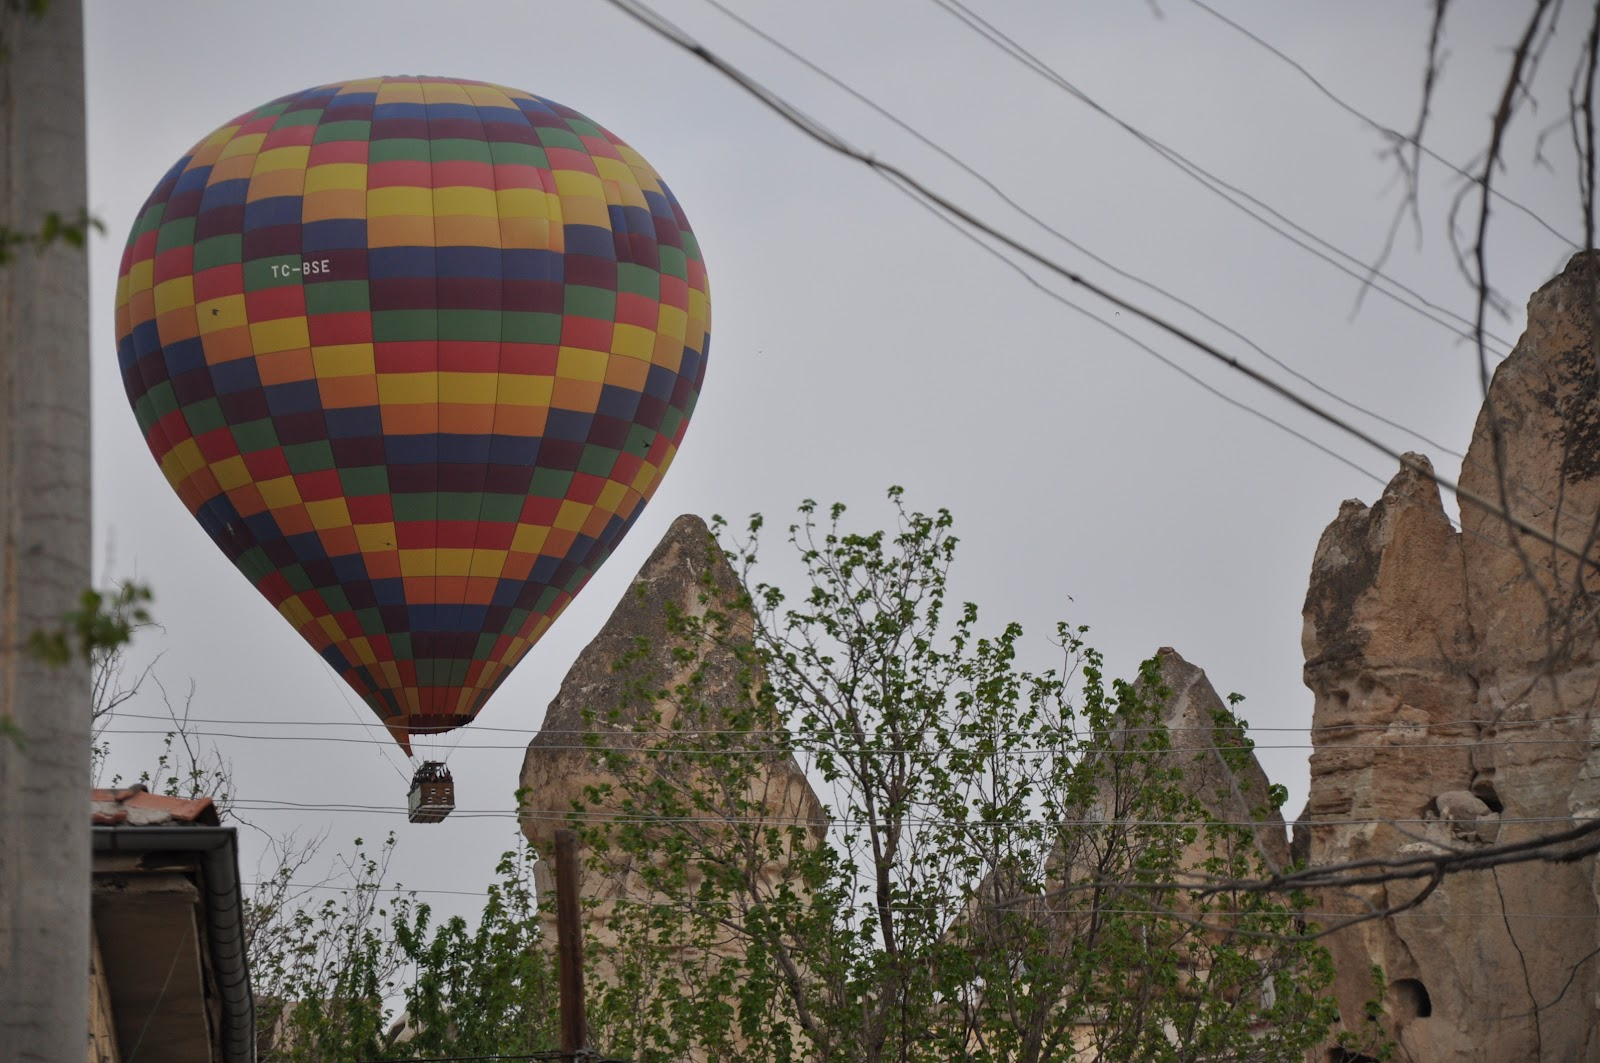 http://www.theressomuchtosee.com/2012/05/advice-on-visiting-cappadocia.html